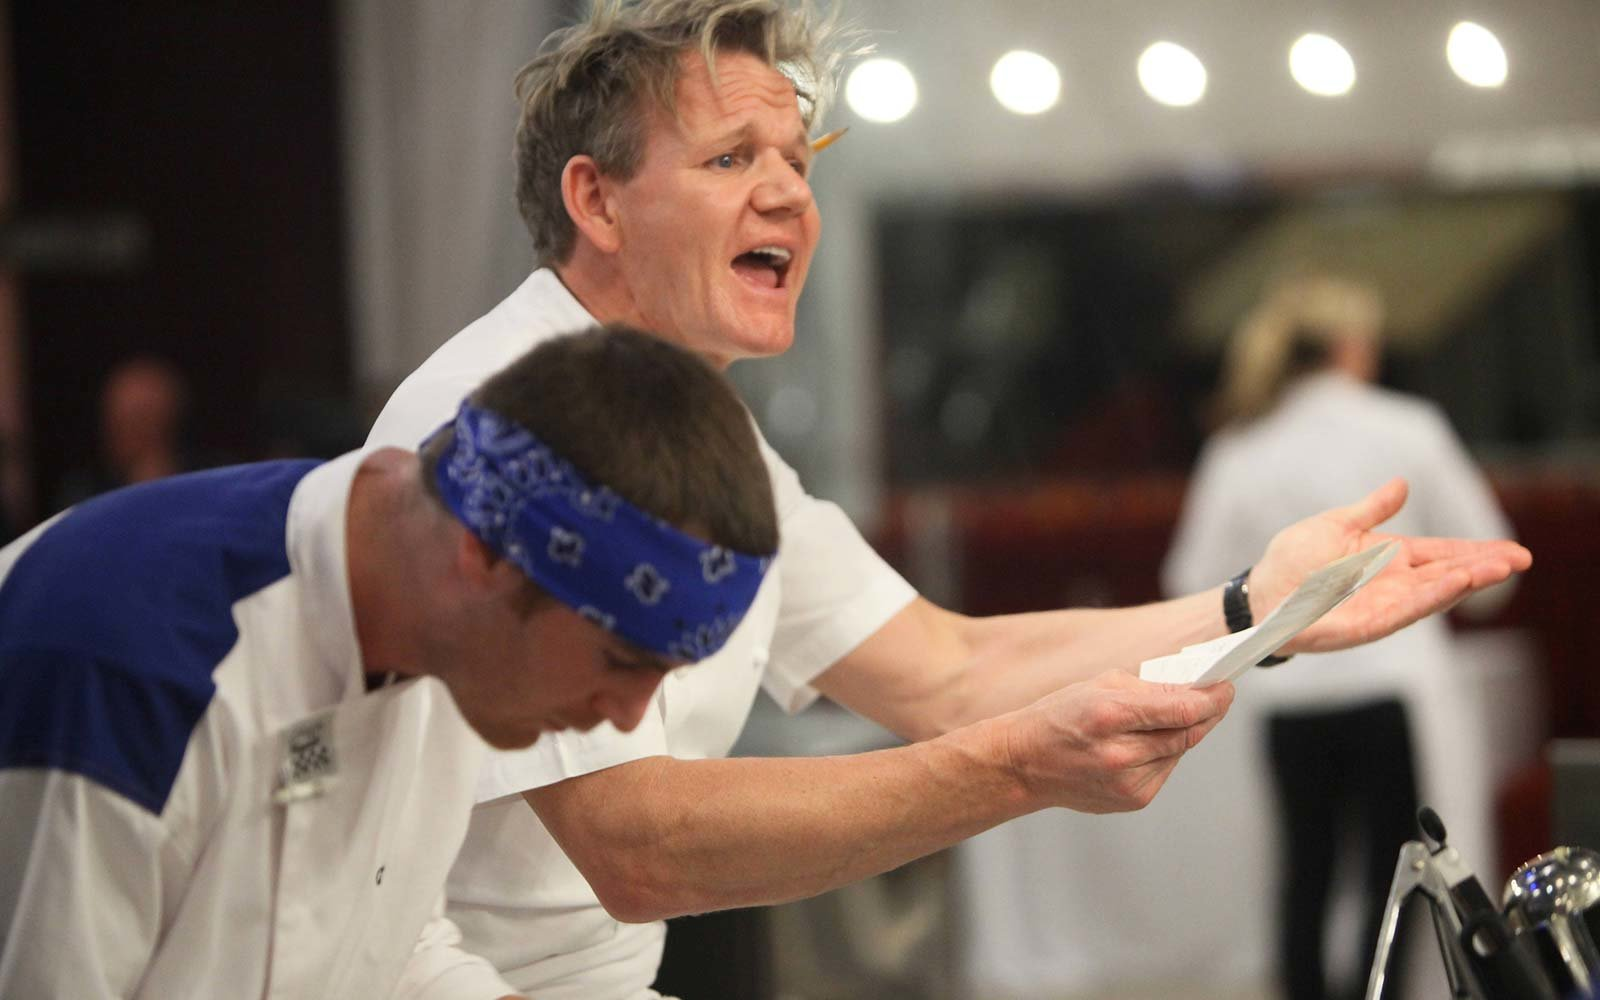 Why Gordon Ramsay won't eat airplane food